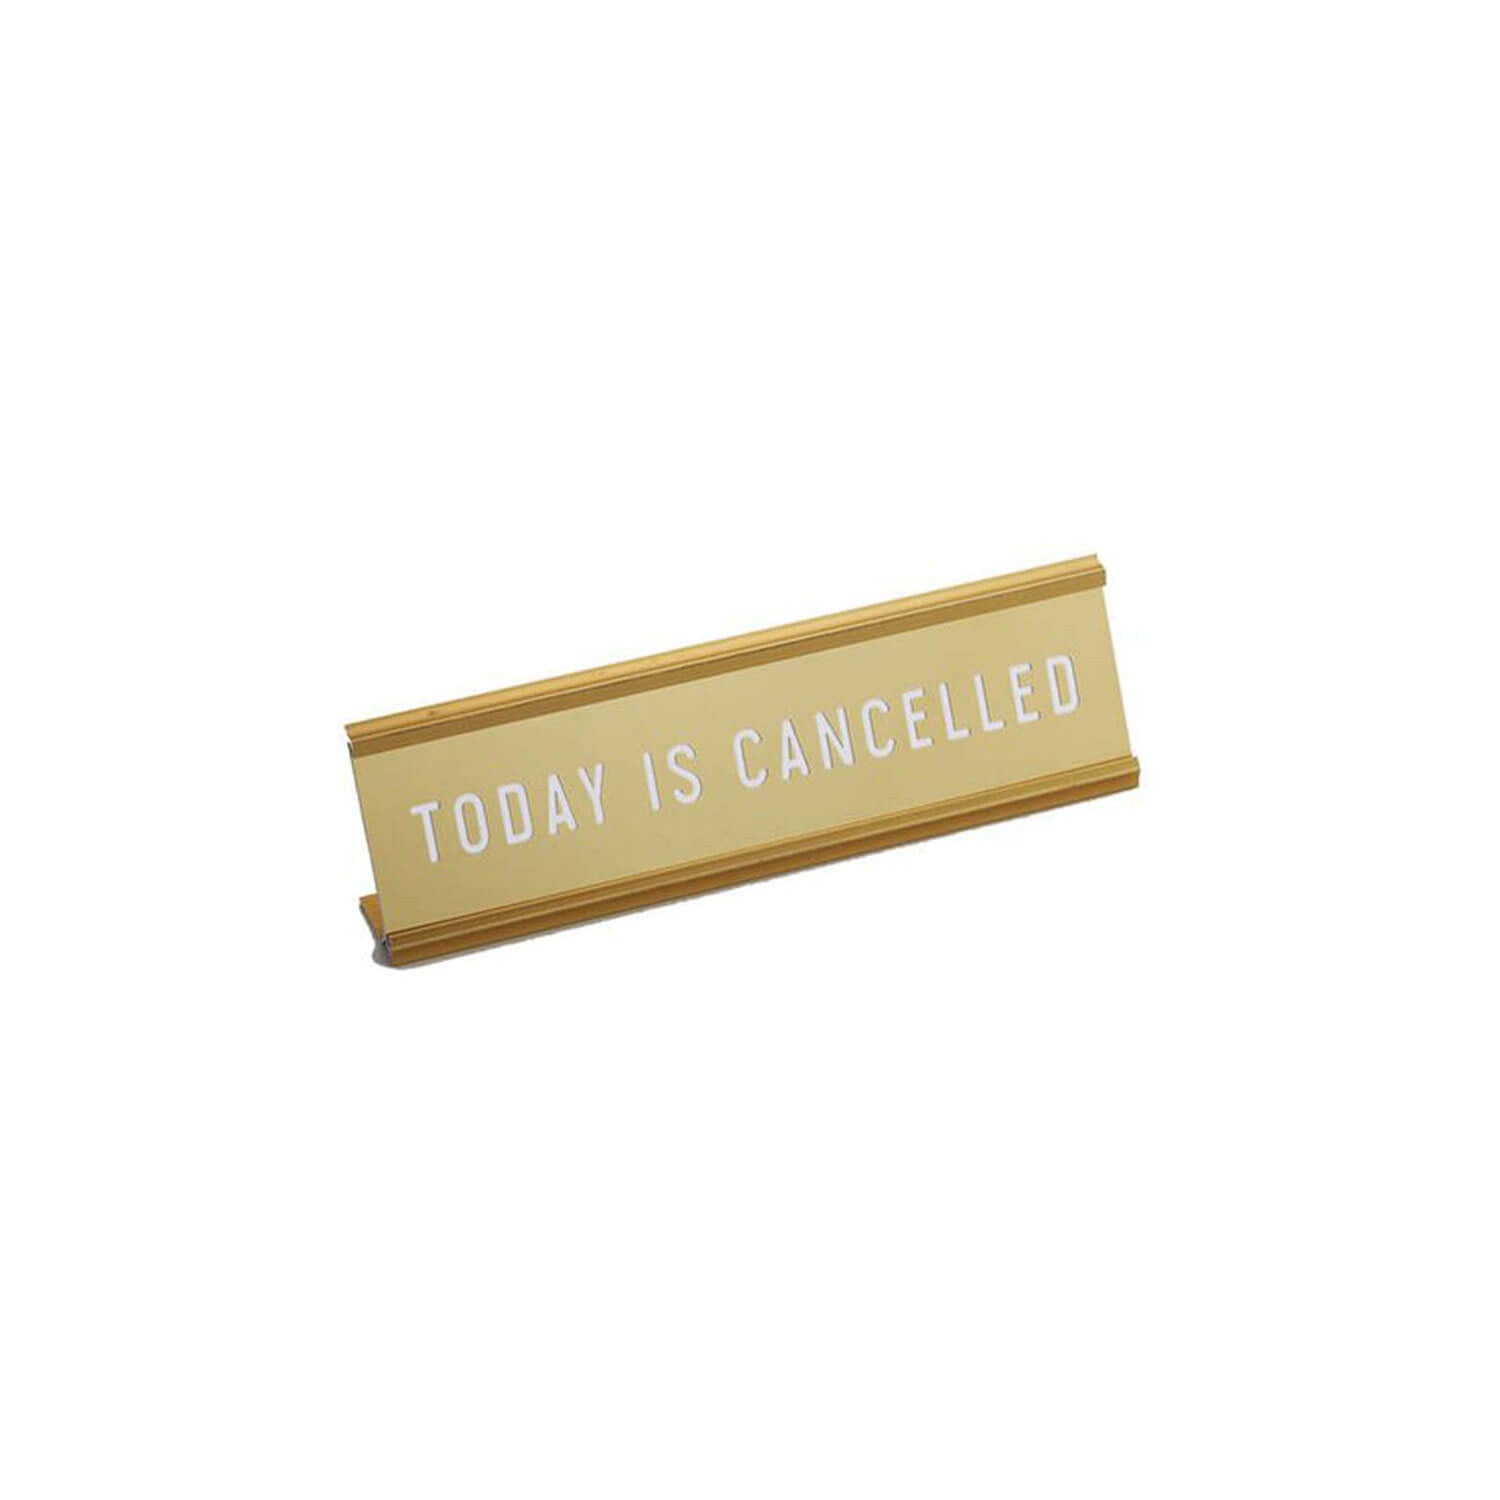 Gold Desk Name Plate - TODAY IS CANCELLED